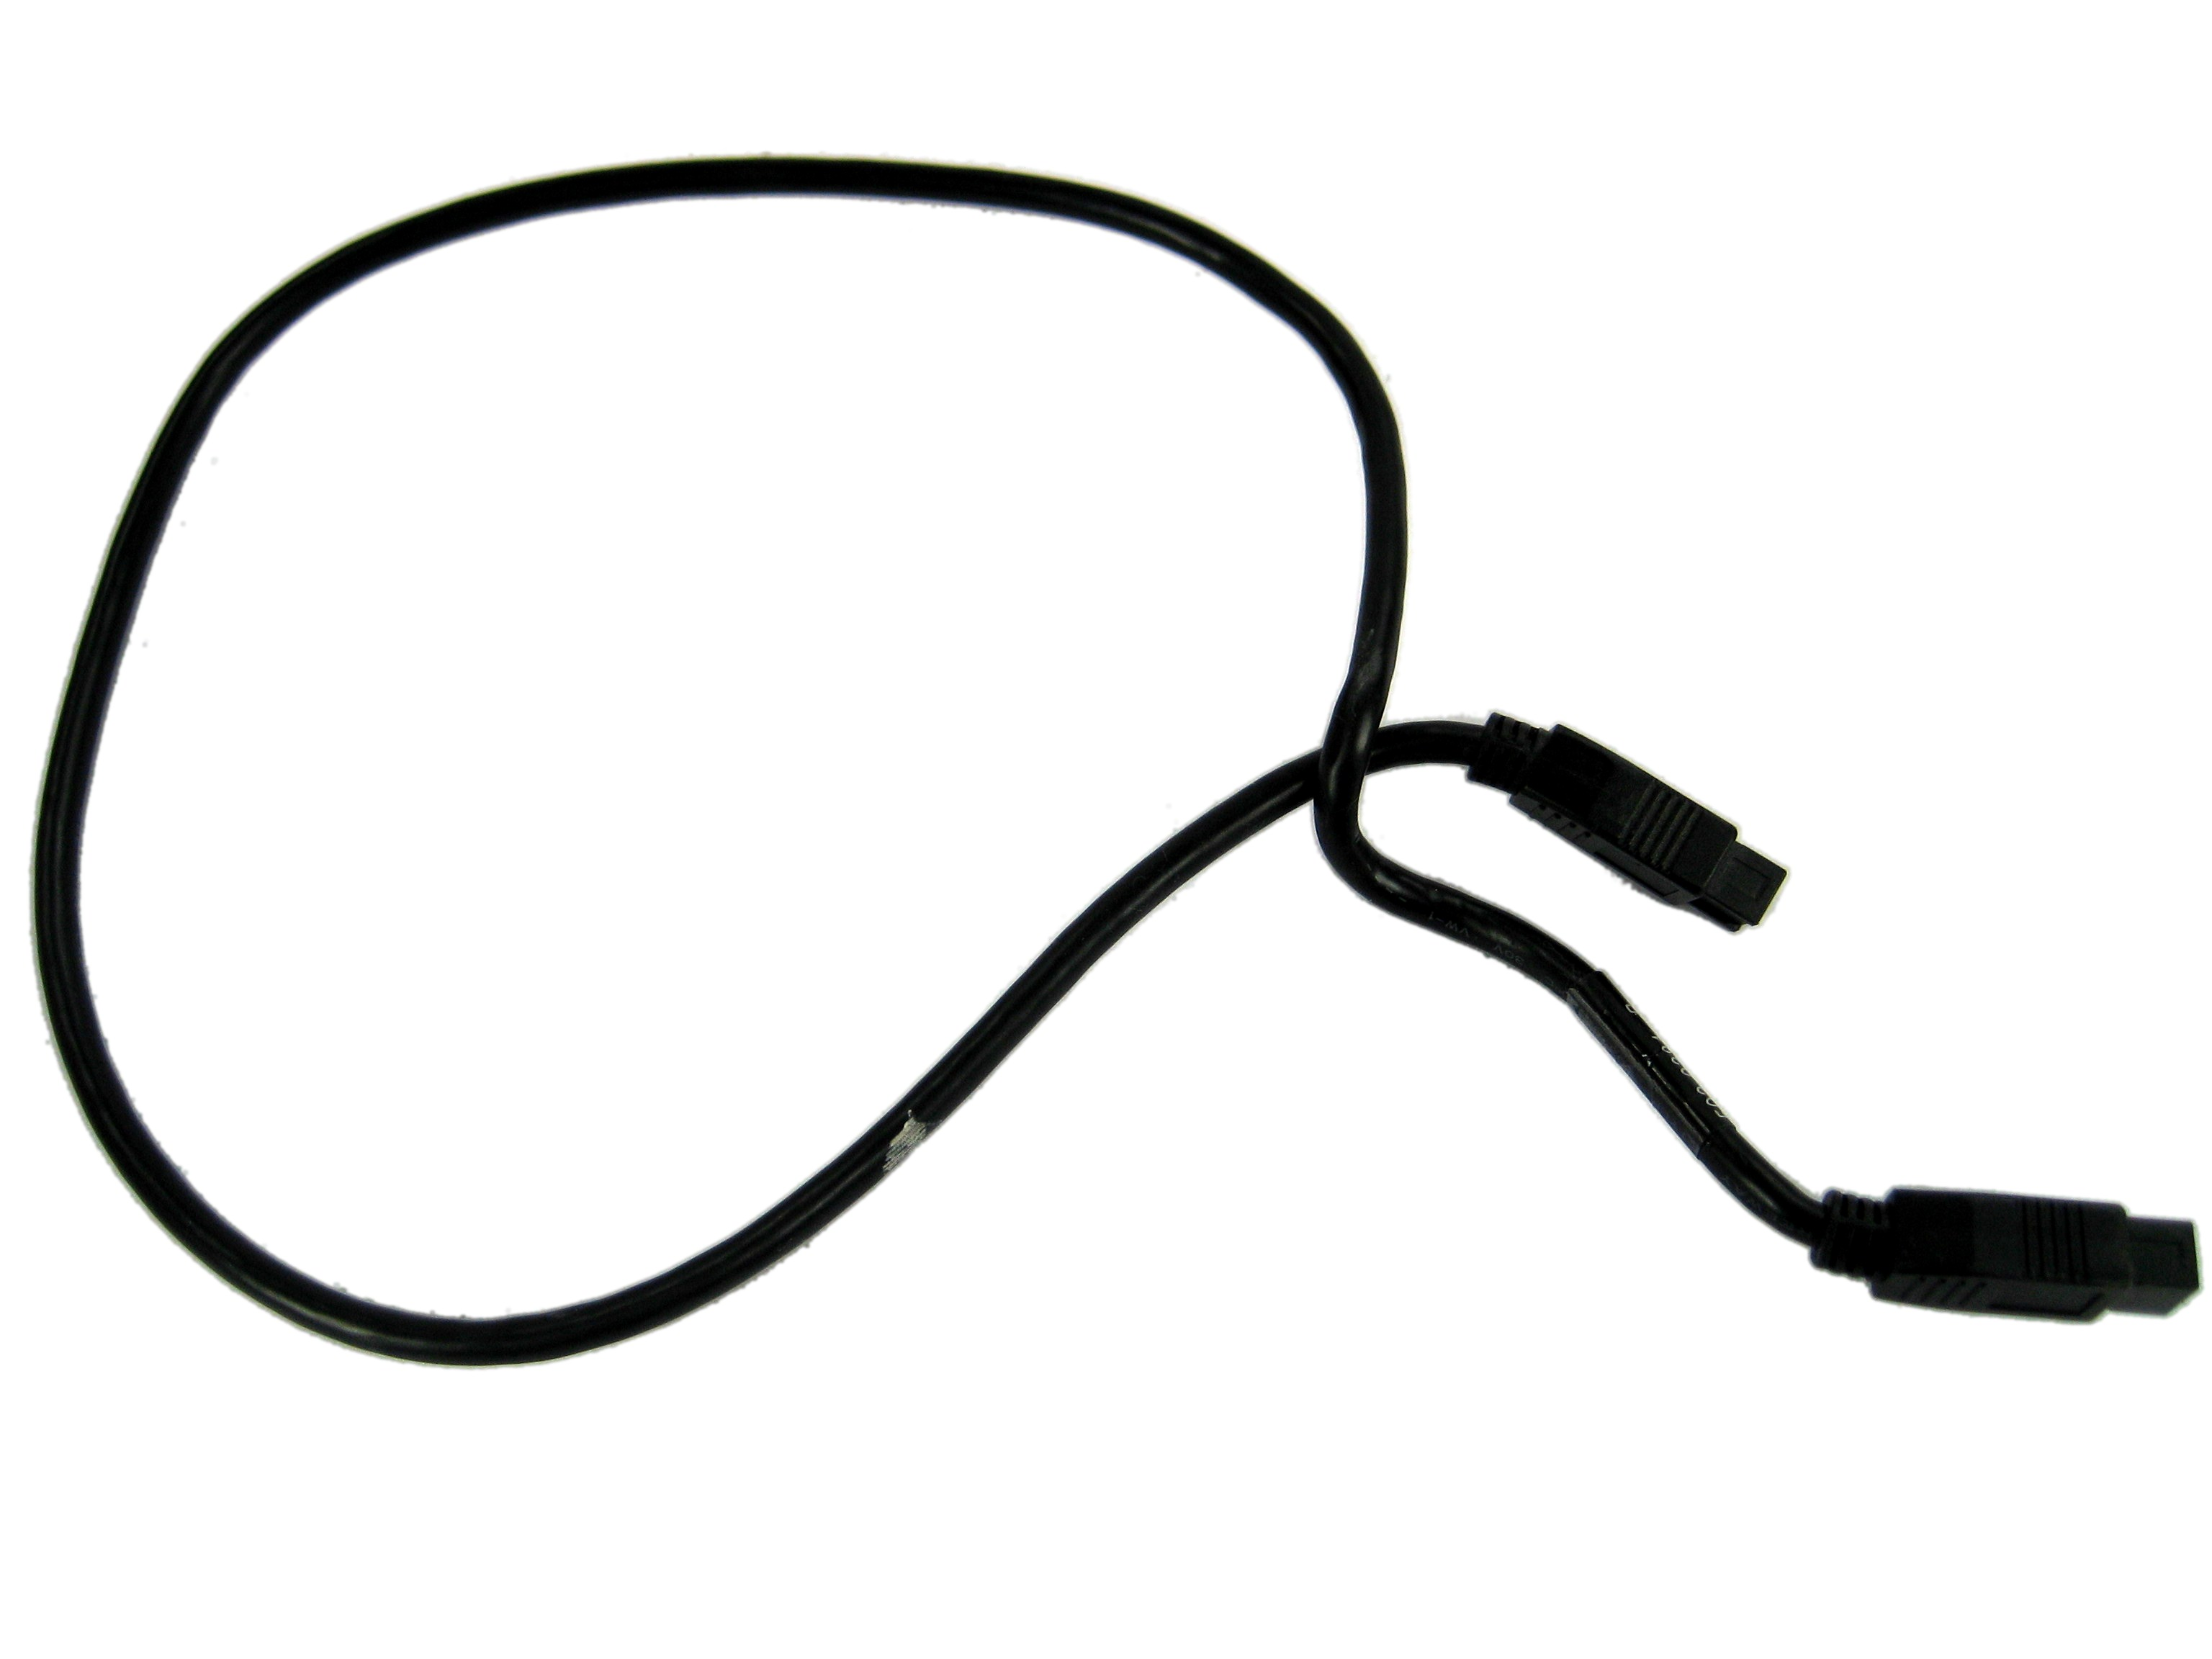 Apple 593-0384-A Mac Pro (Mid 2006) Front Panel Firewire Cable ...